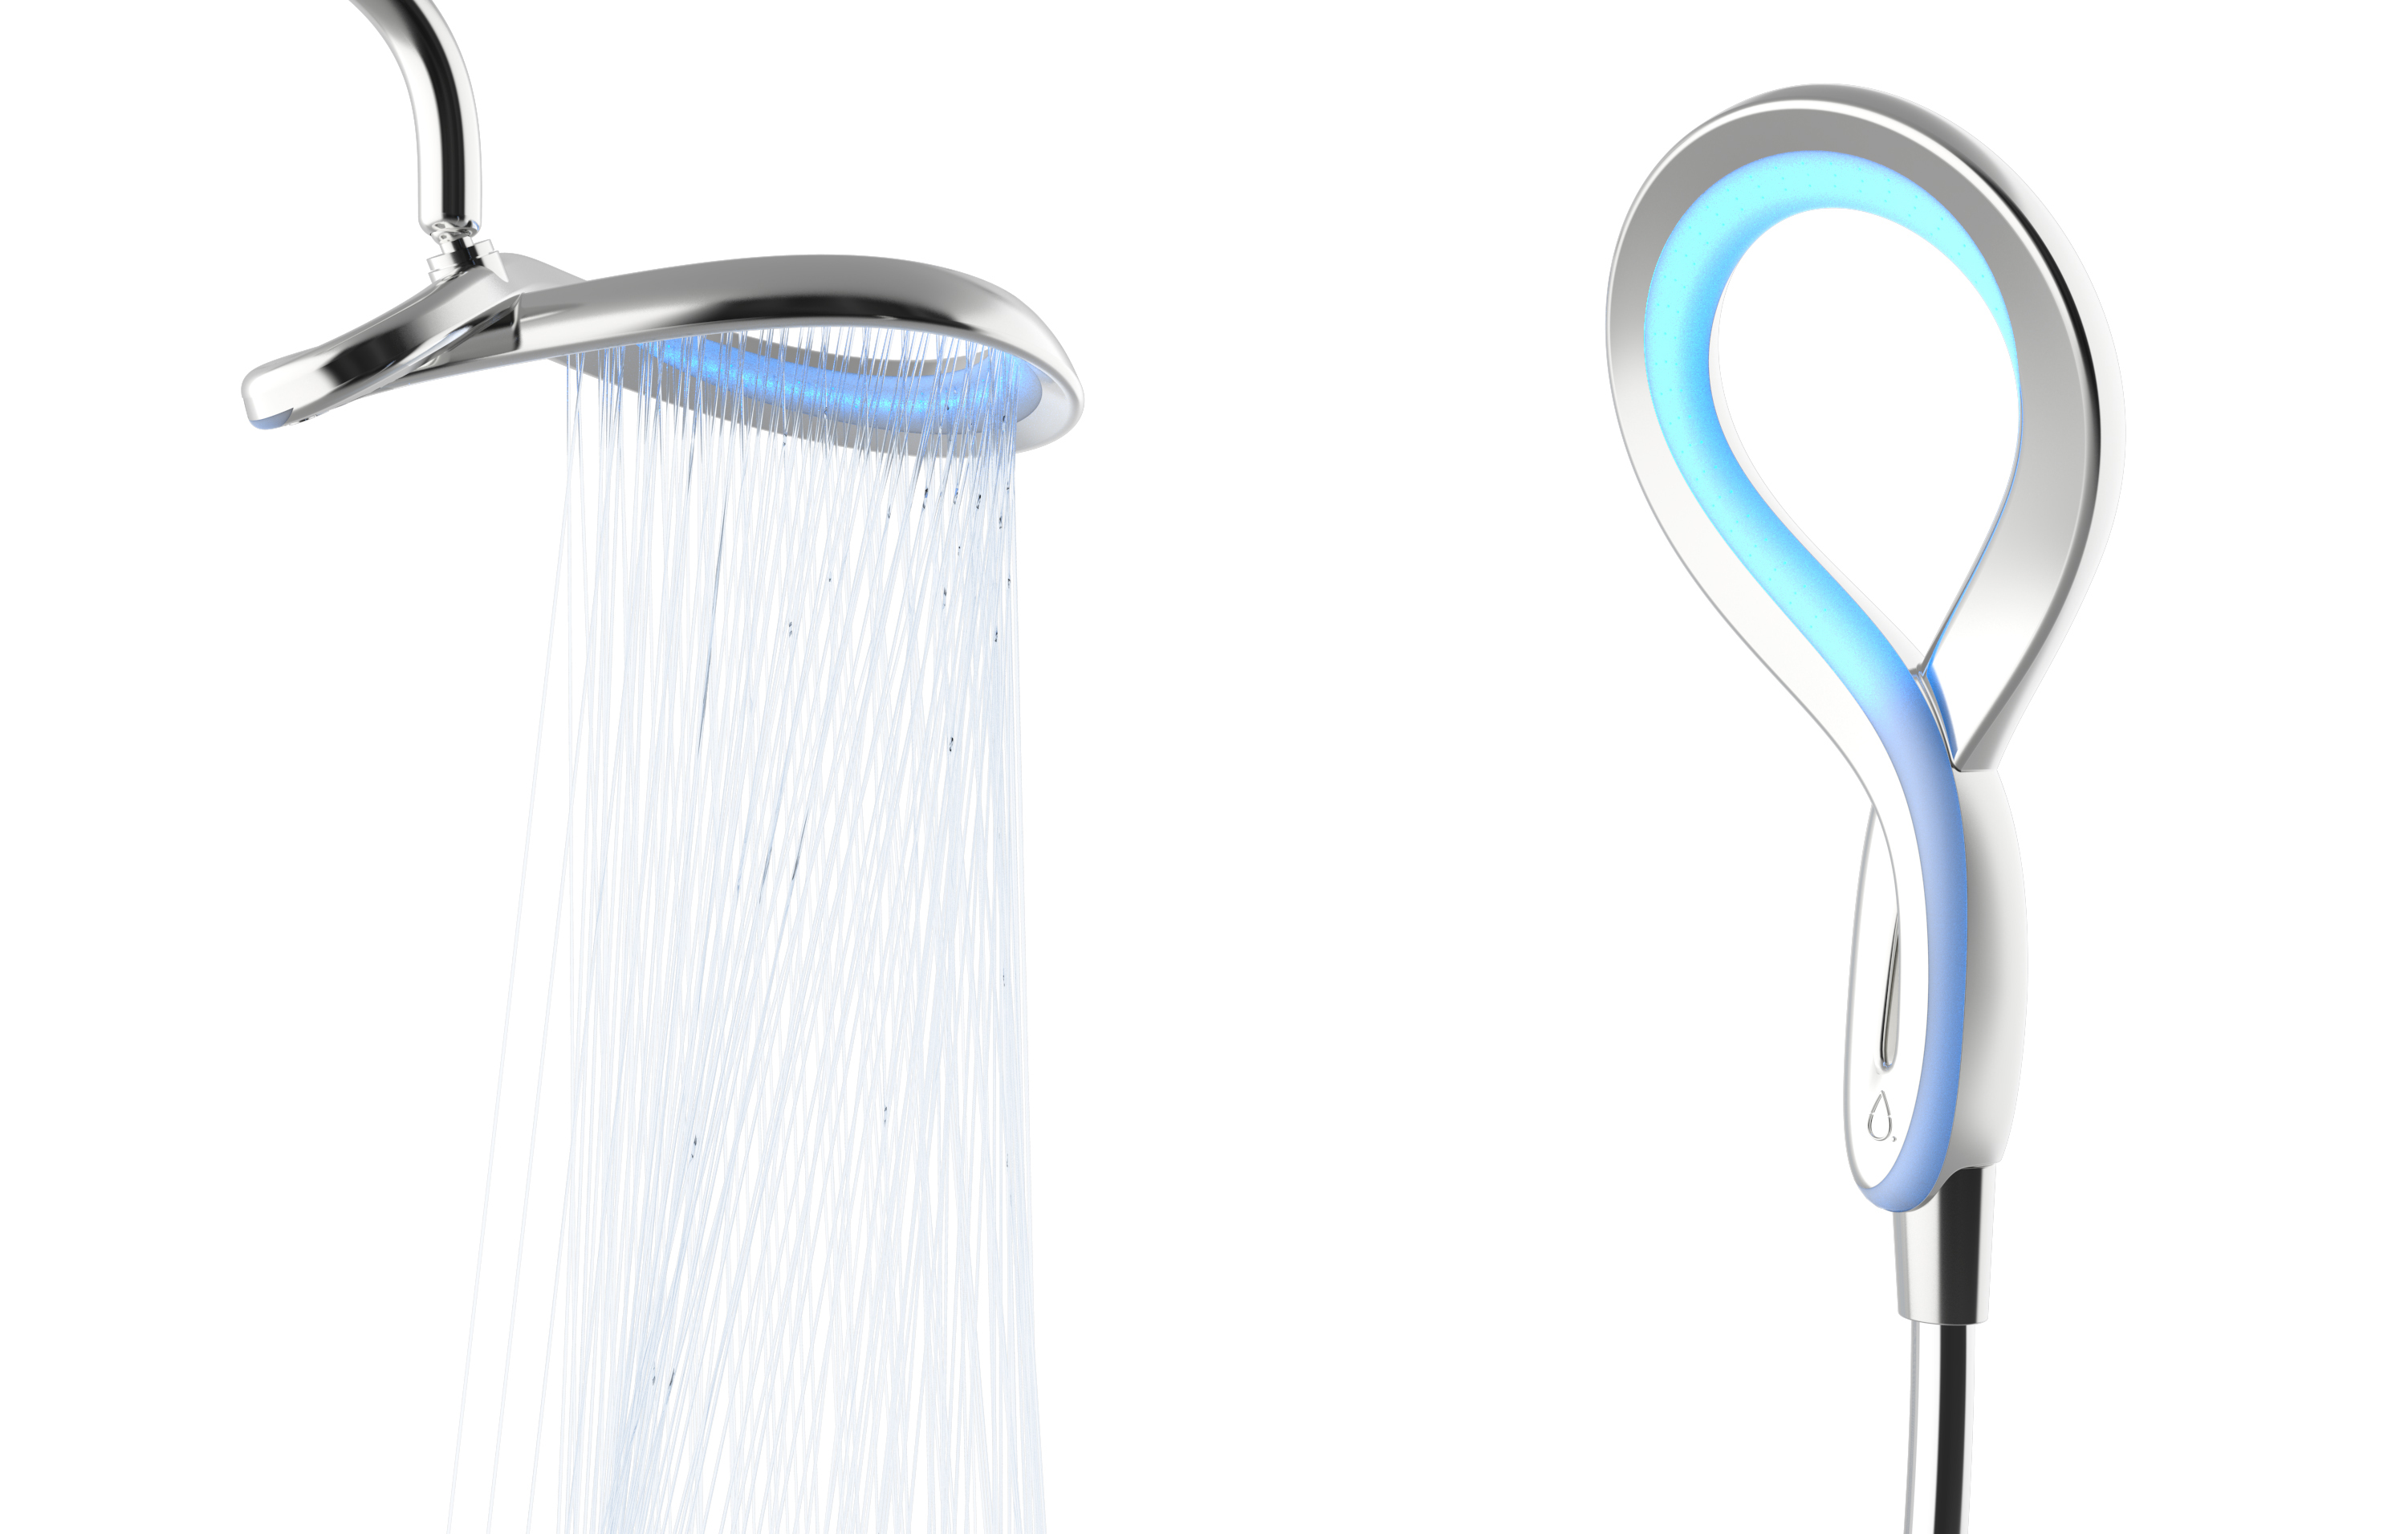 hydrao-loop-smart-shower-set-photo-business-wire